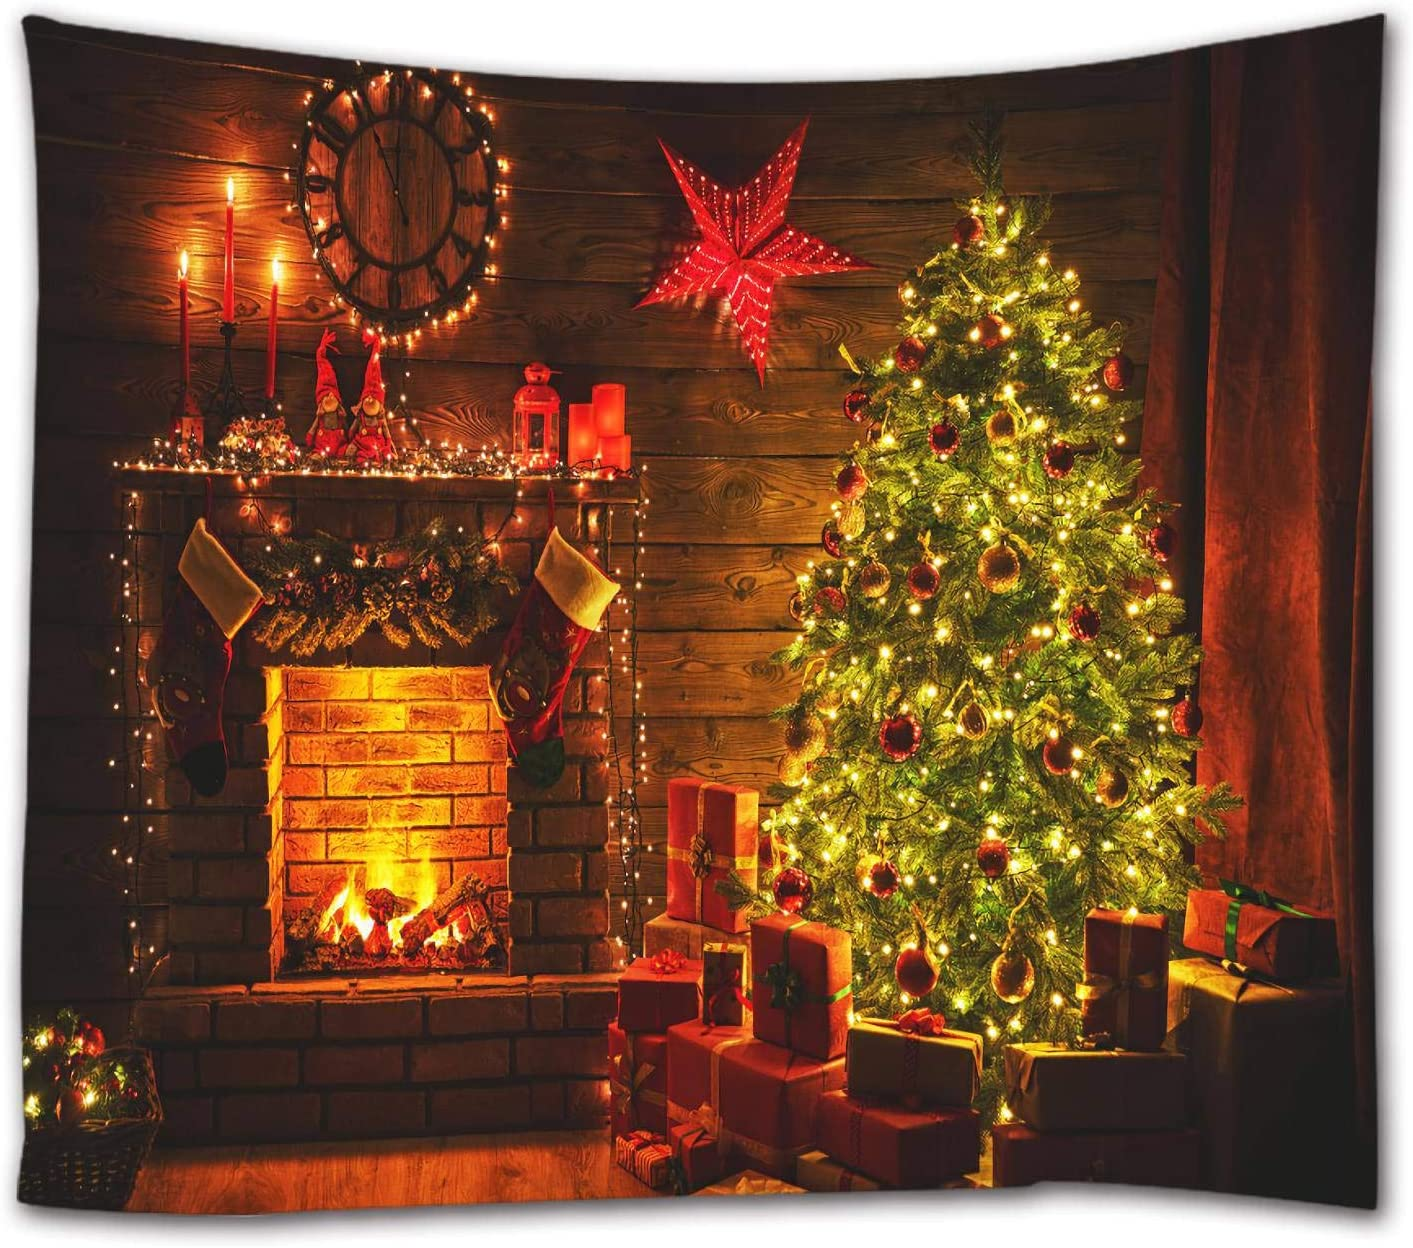 ELELIFE Xmas Wall Tapestry Christmas Tree Fireplace Gifts at Night Wall Hanging Tapestry for Holiday Photography New Year Wall Deocr for Bedroom Nursery Dorm